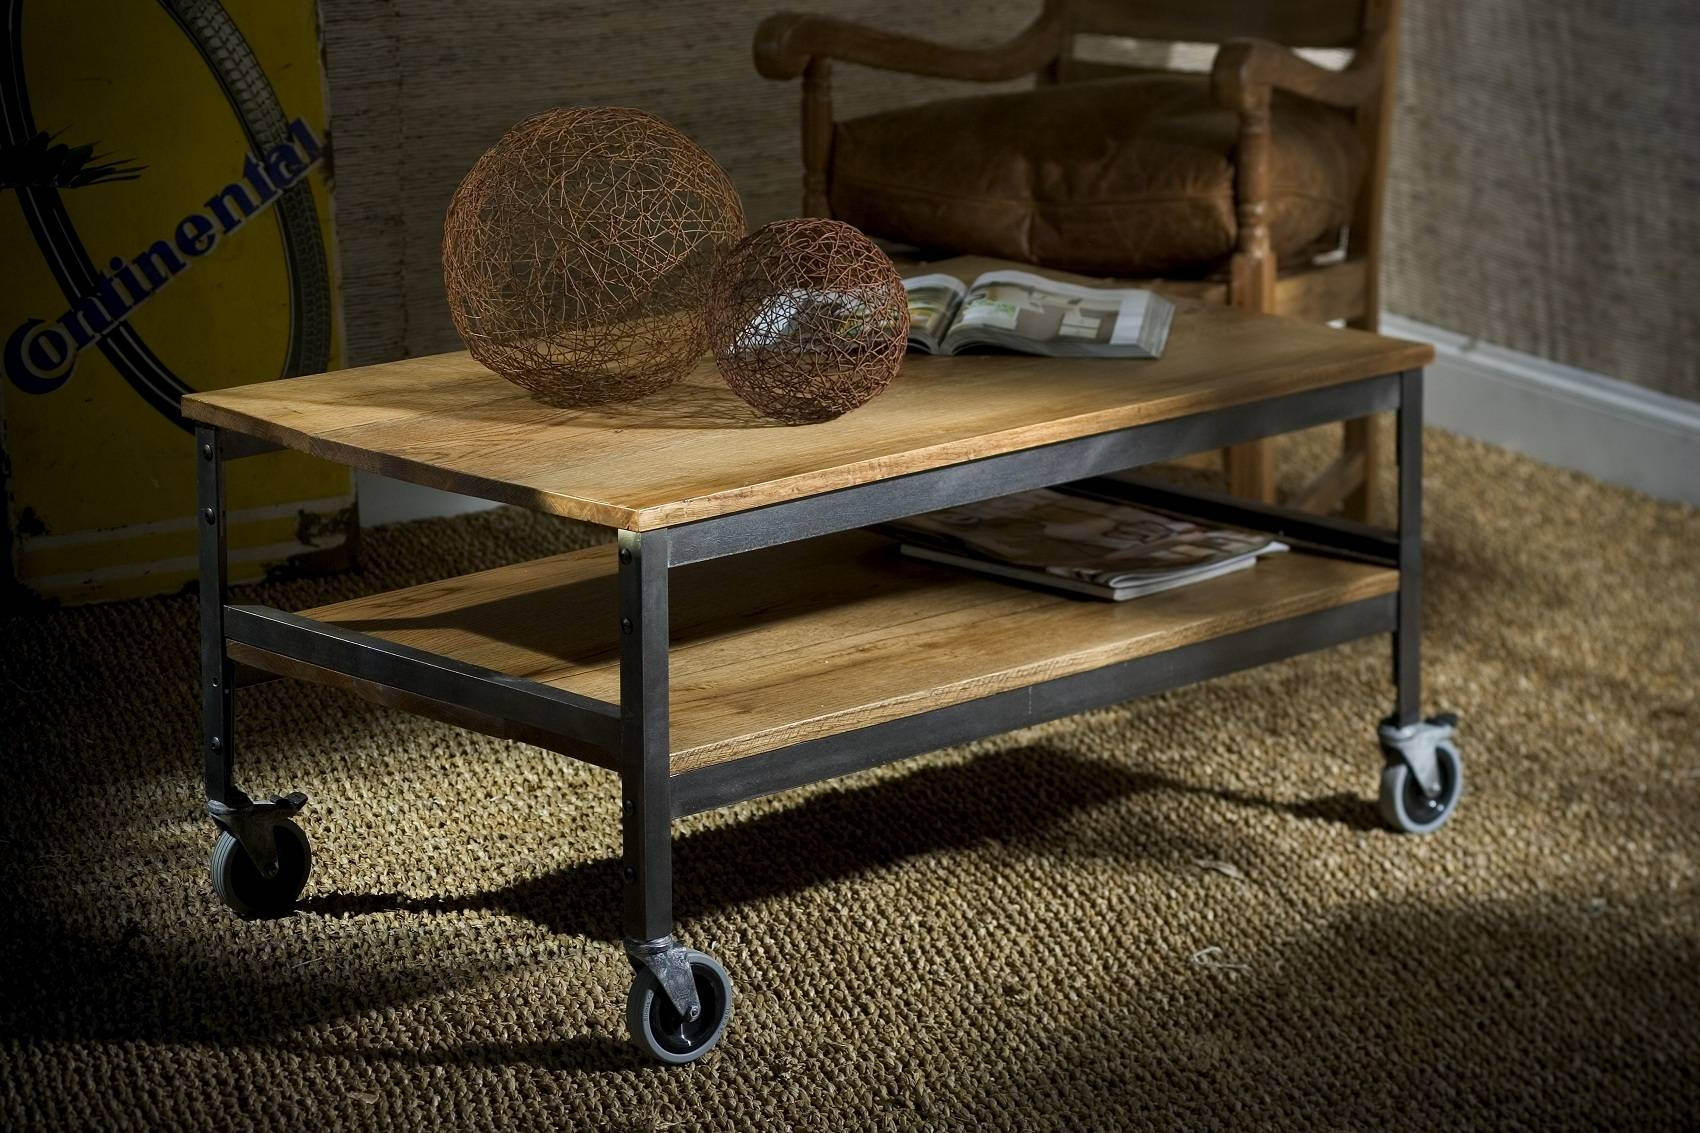 Rustic Farmhouse Coffee Table With Antique Rustic Coffee Tables (View 23 of 30)